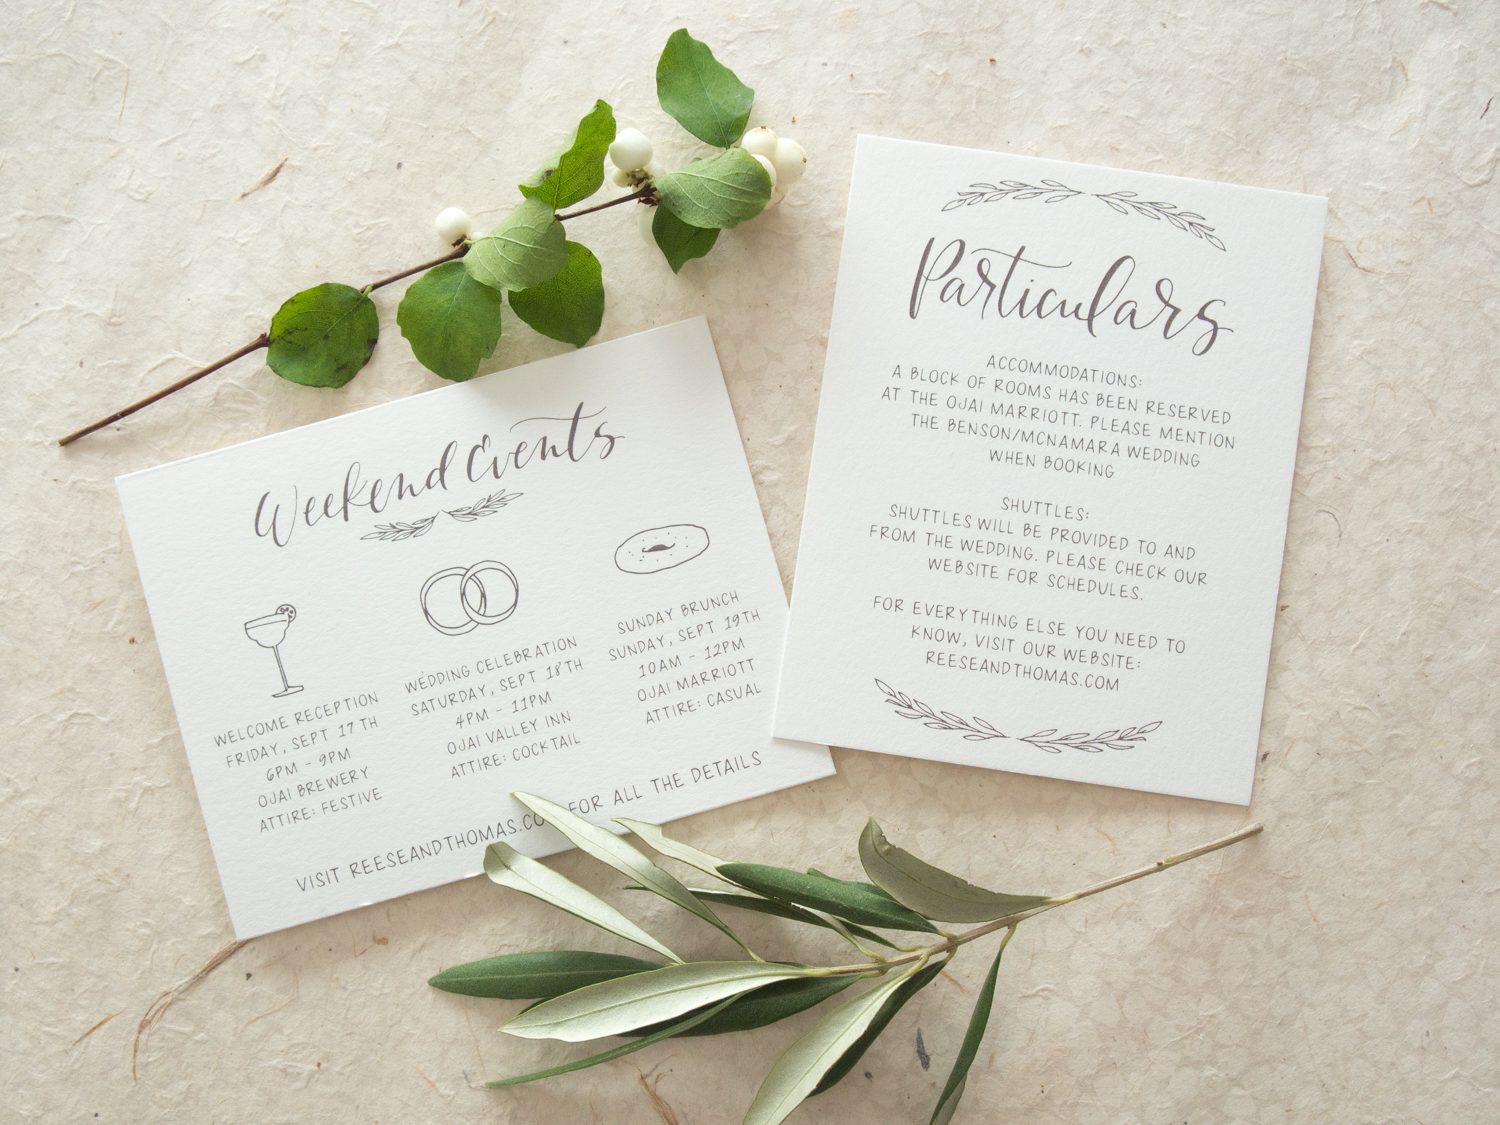 Rustic Wedding Invitations Weekend Events and Particulars Card from Bright Room Studio